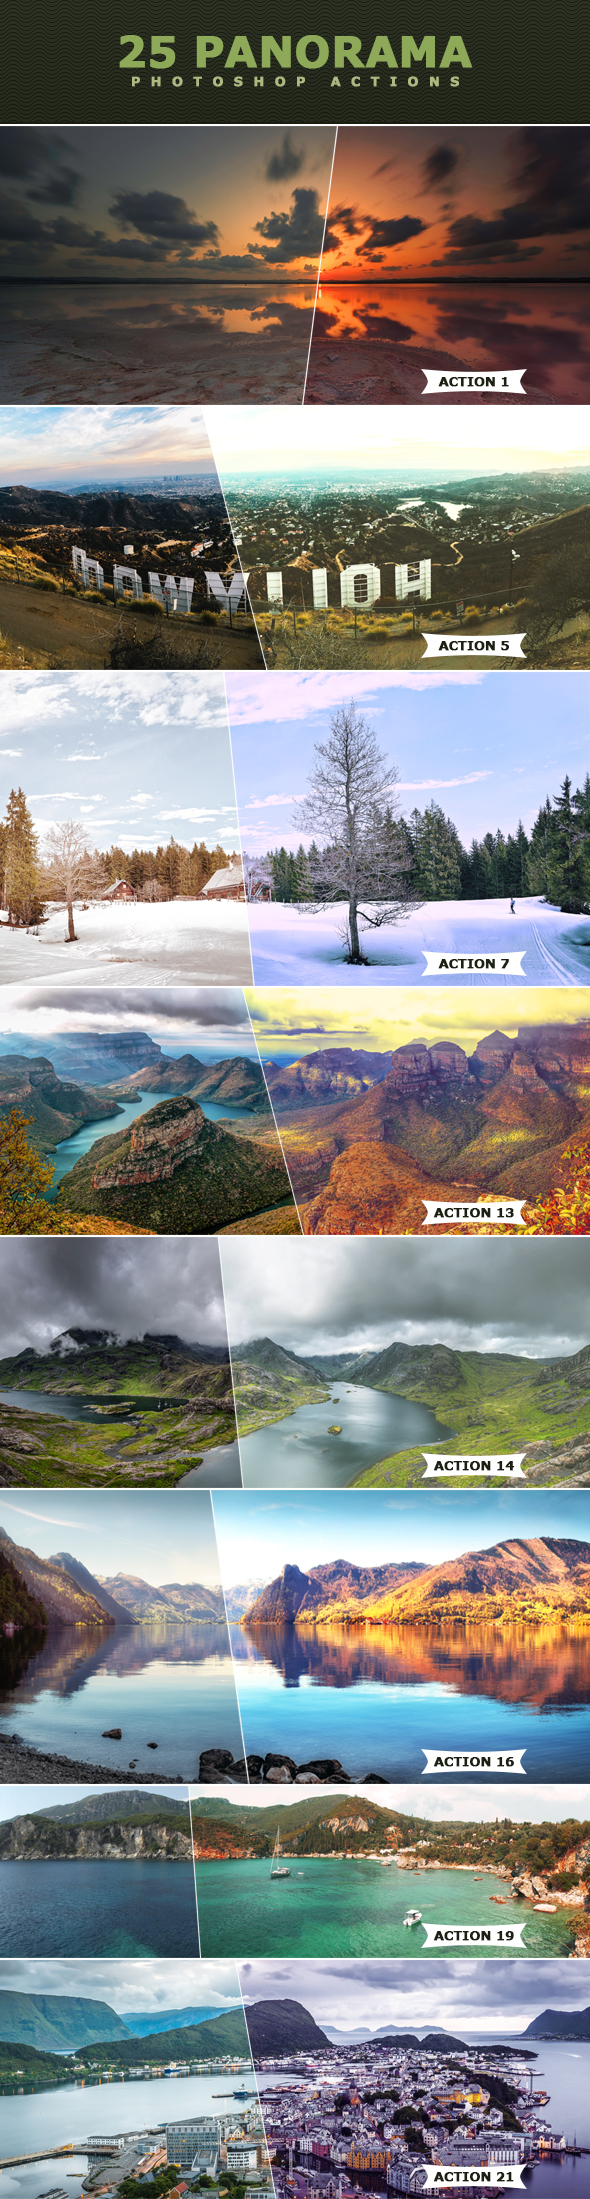 25 Panorama Actions - Photo Effects Actions